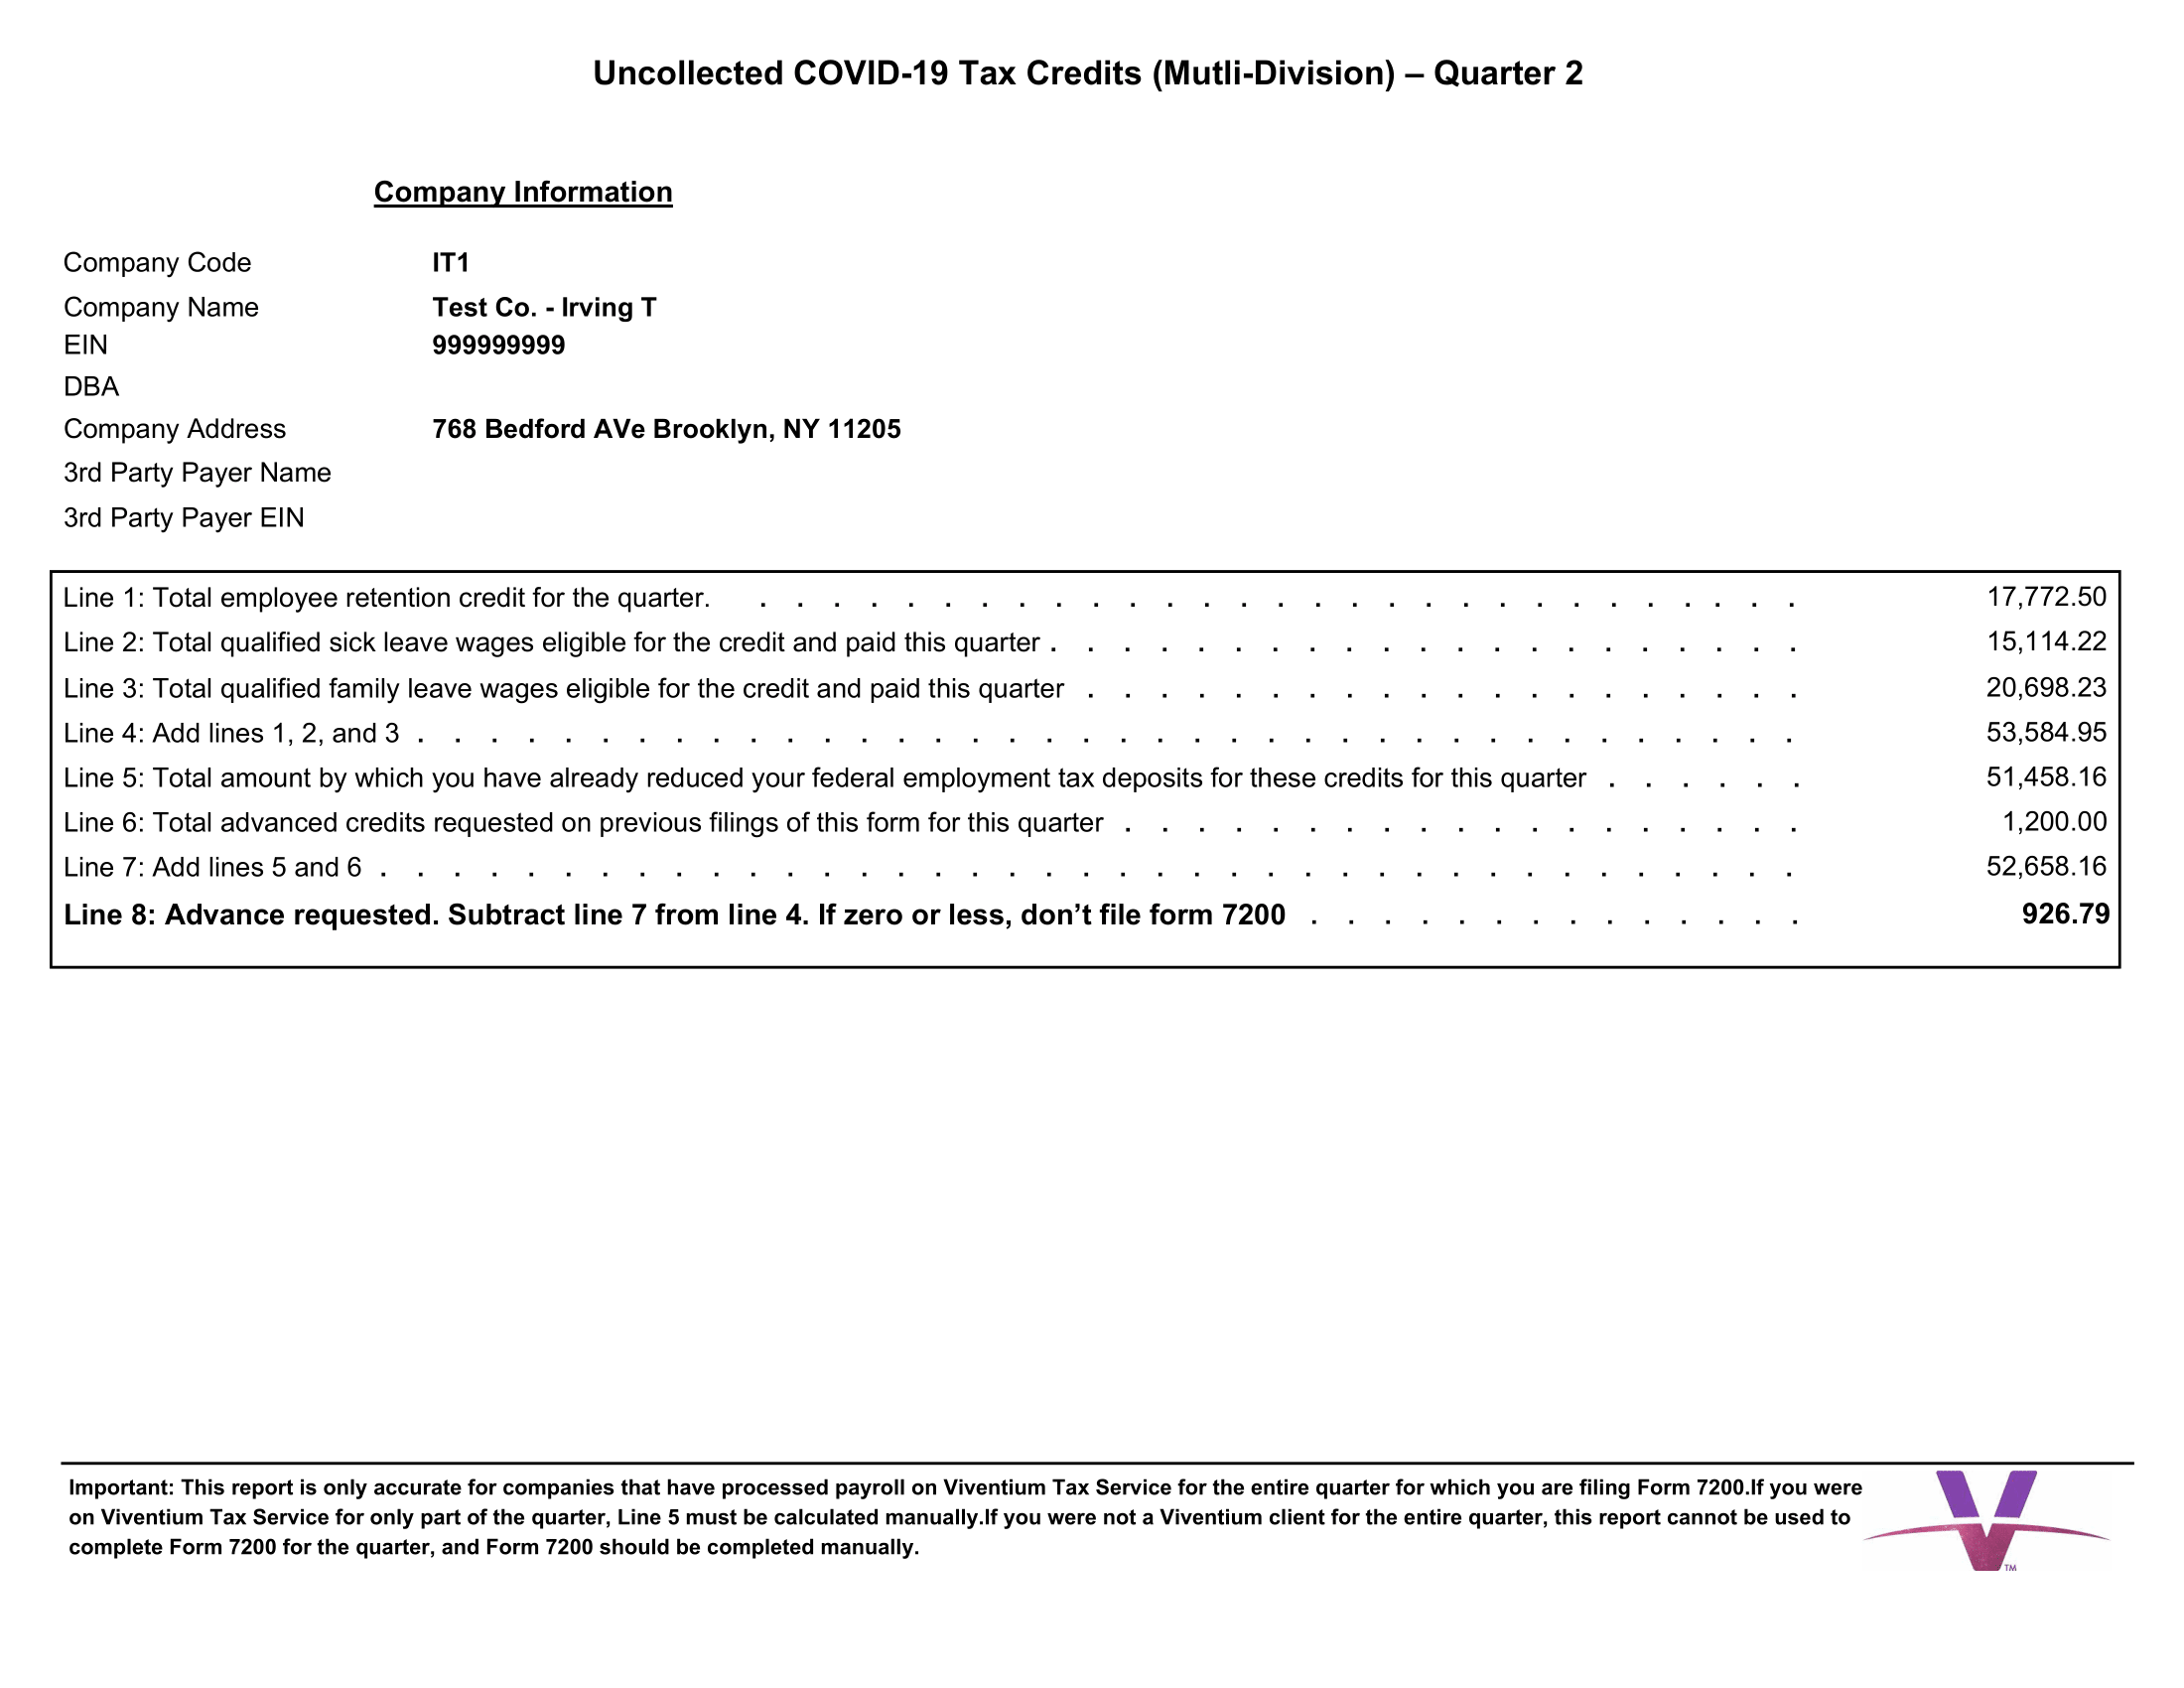 THE UNCOLLECTED COVID-19 TAX CREDIT REPORT